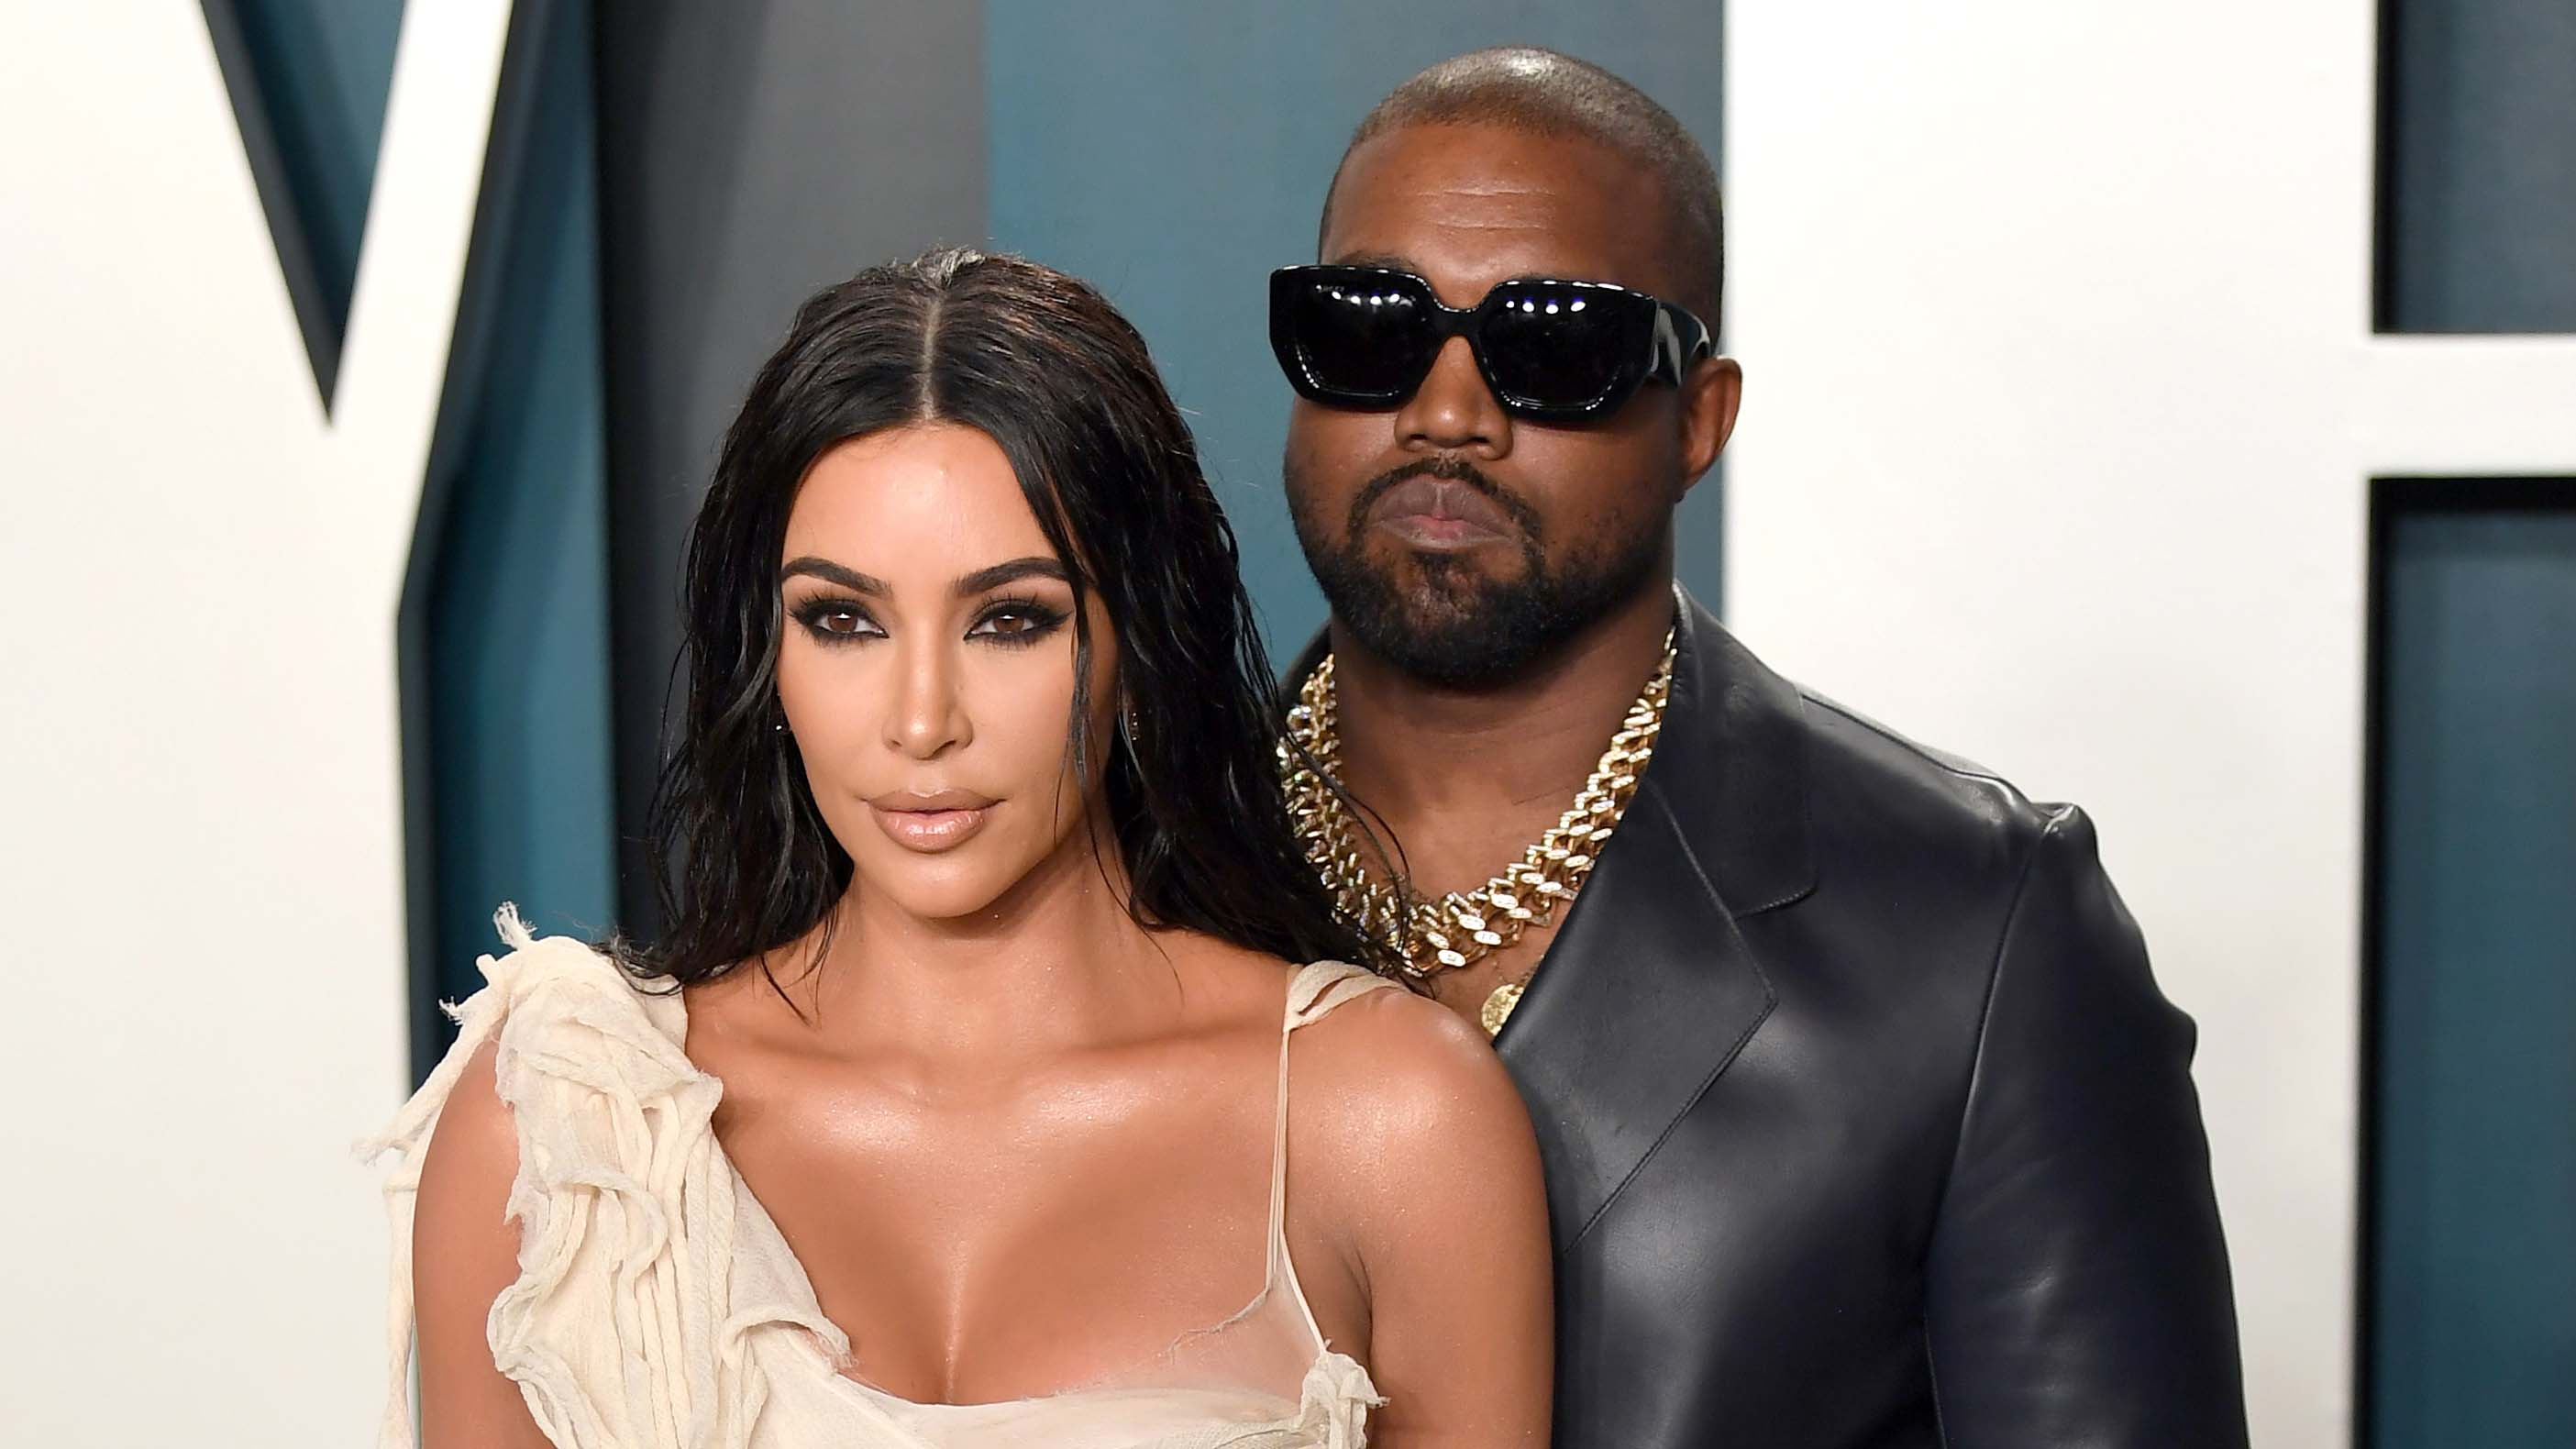 Kanye West issues public apology to wife Kim Kardashian following Twitter rant – Fox News